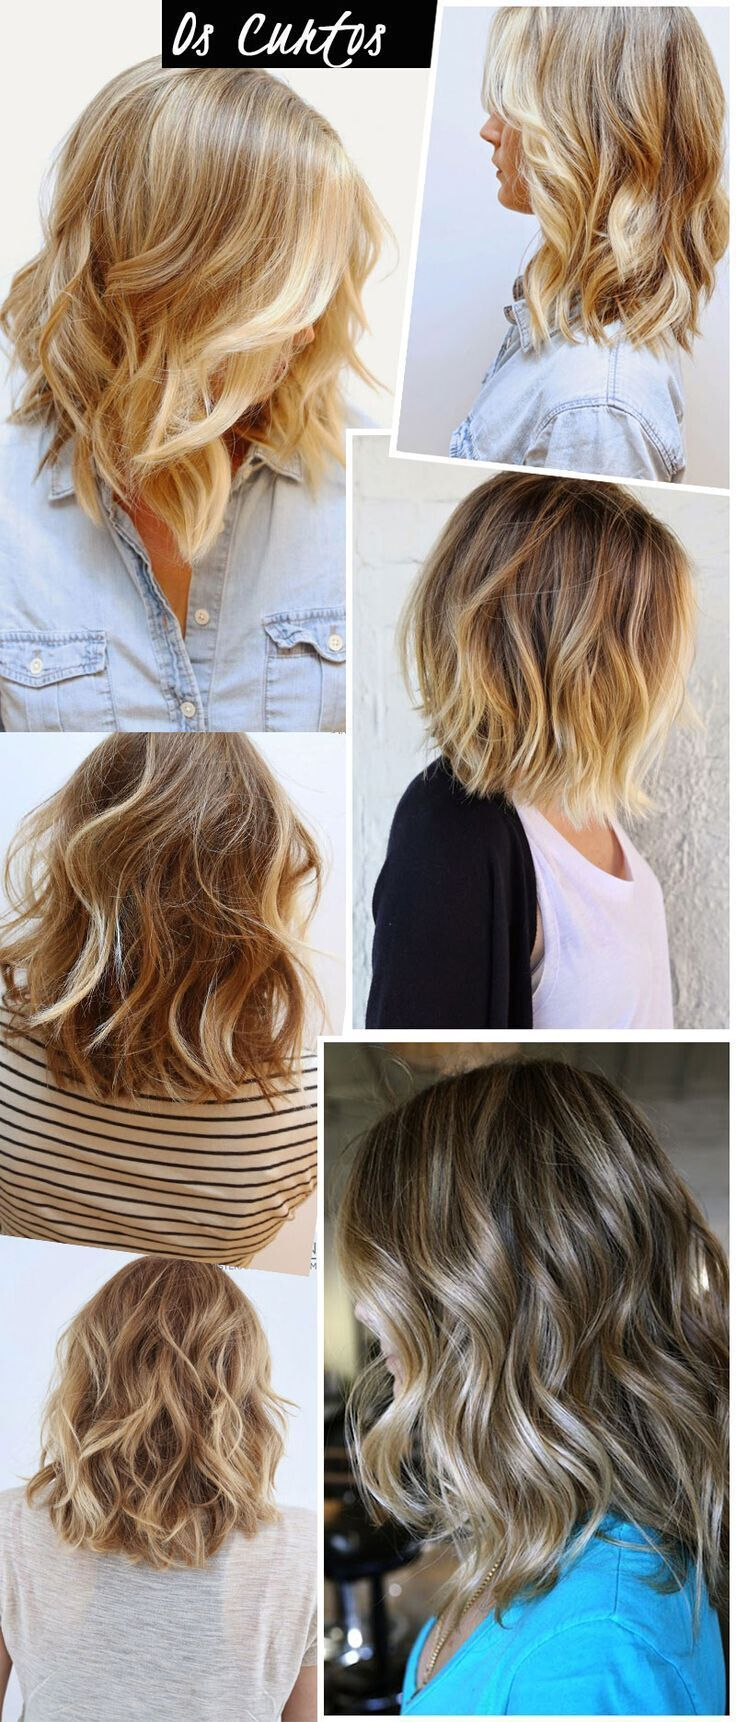 Welp- just found myself in Pinterest - weird. If you want a sweet ombré call Shandy at Halo Salon.